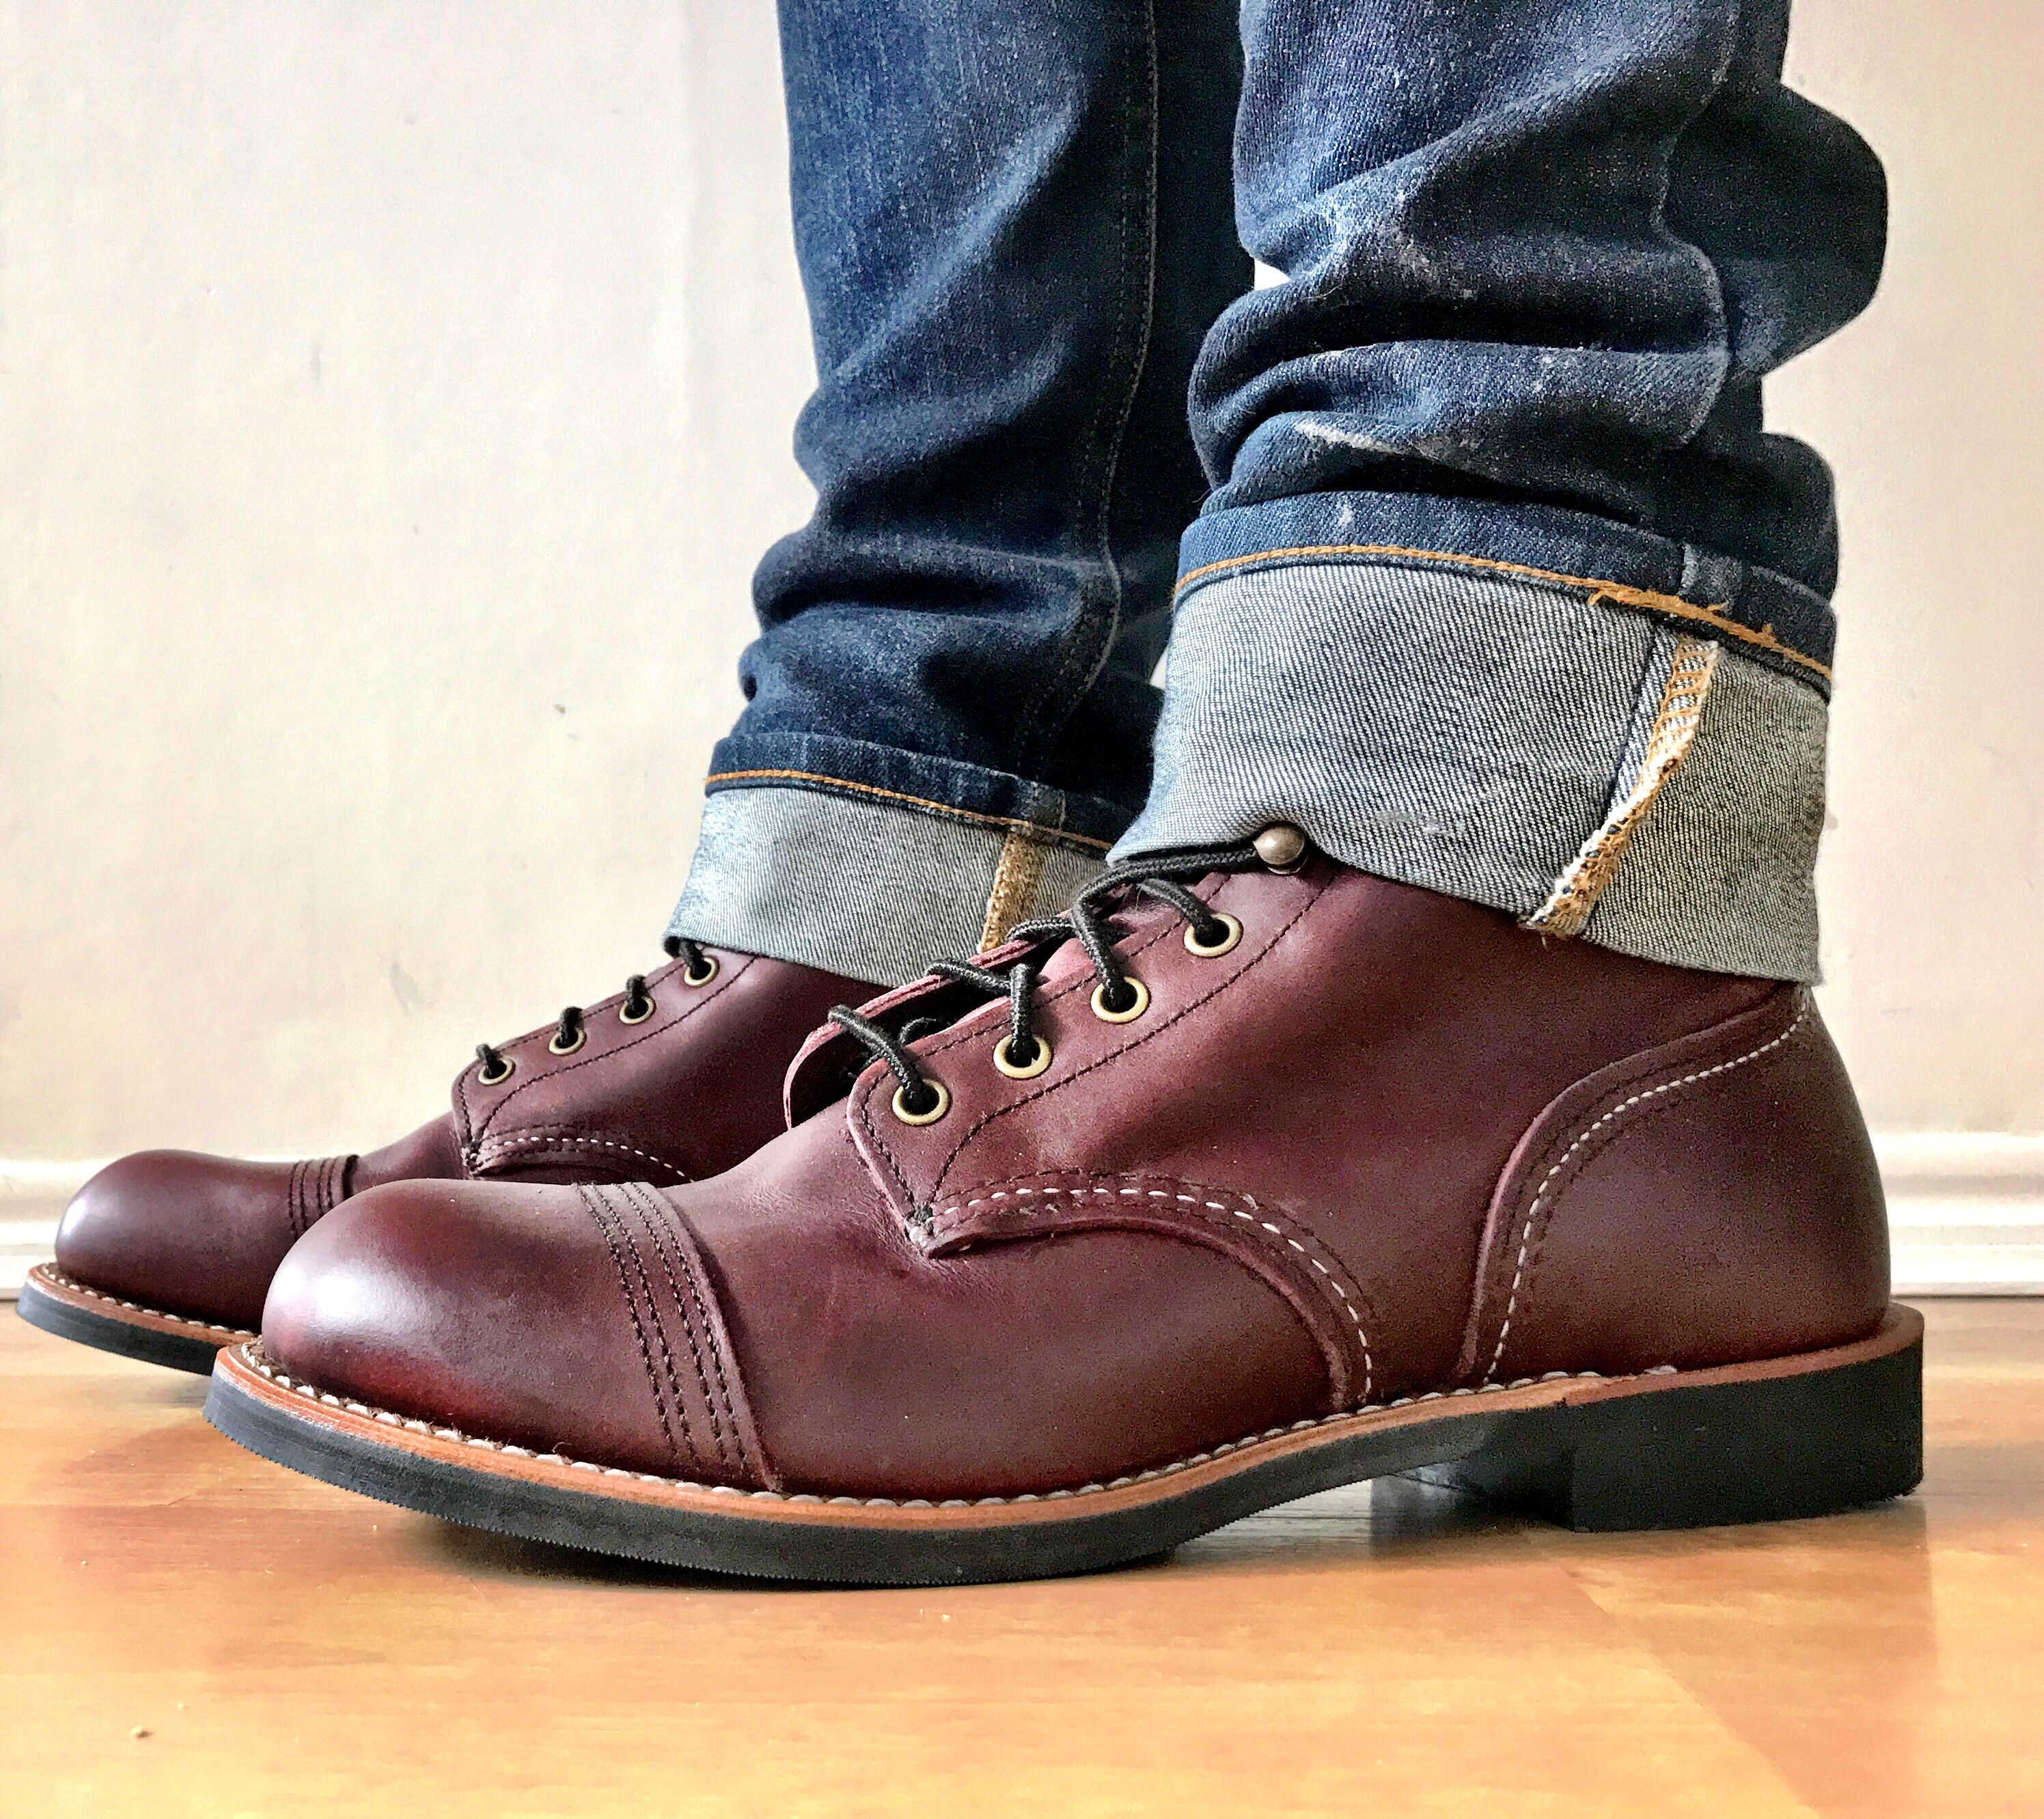 c7ecbd6087e Red Wing Iron Rangers 8119 Oxblood - Day 1 | Redwings in 2019 | Red ...